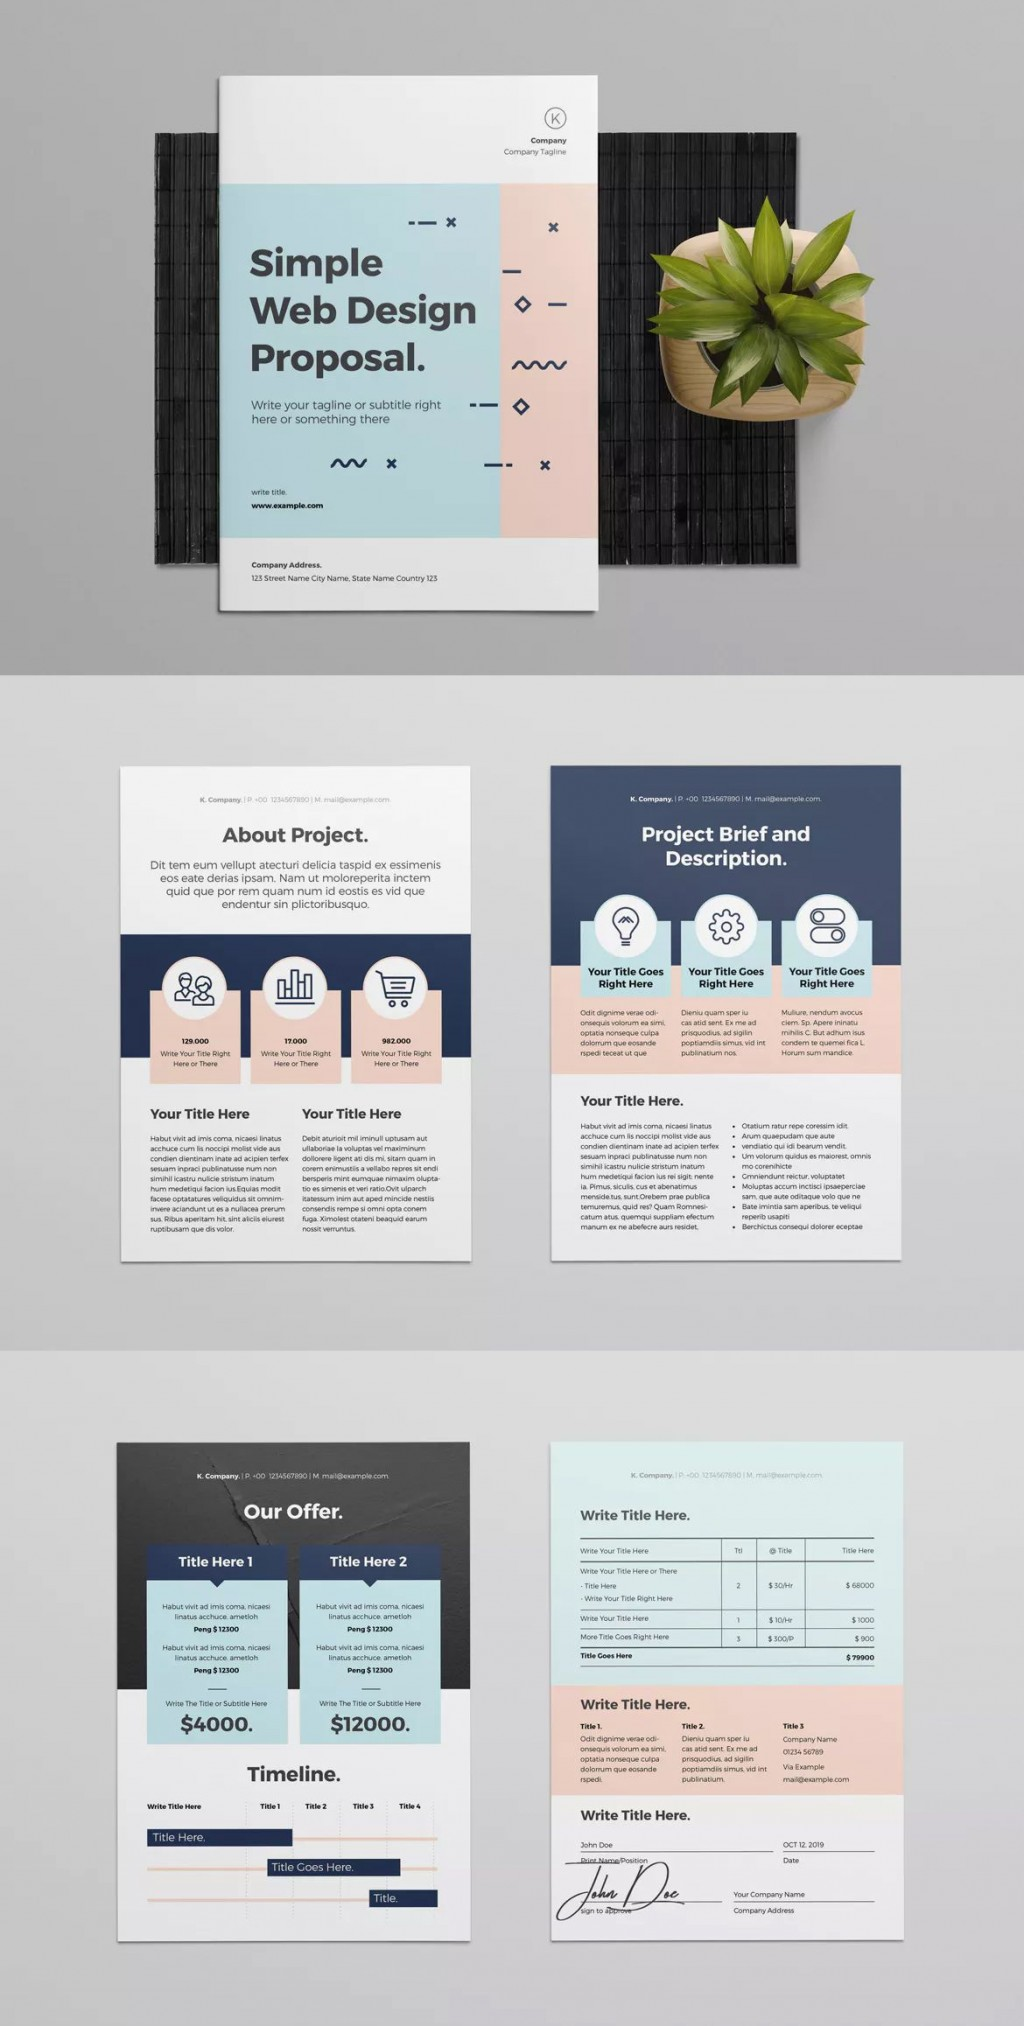 001 Amazing Web Design Proposal Template Indesign High Resolution Large